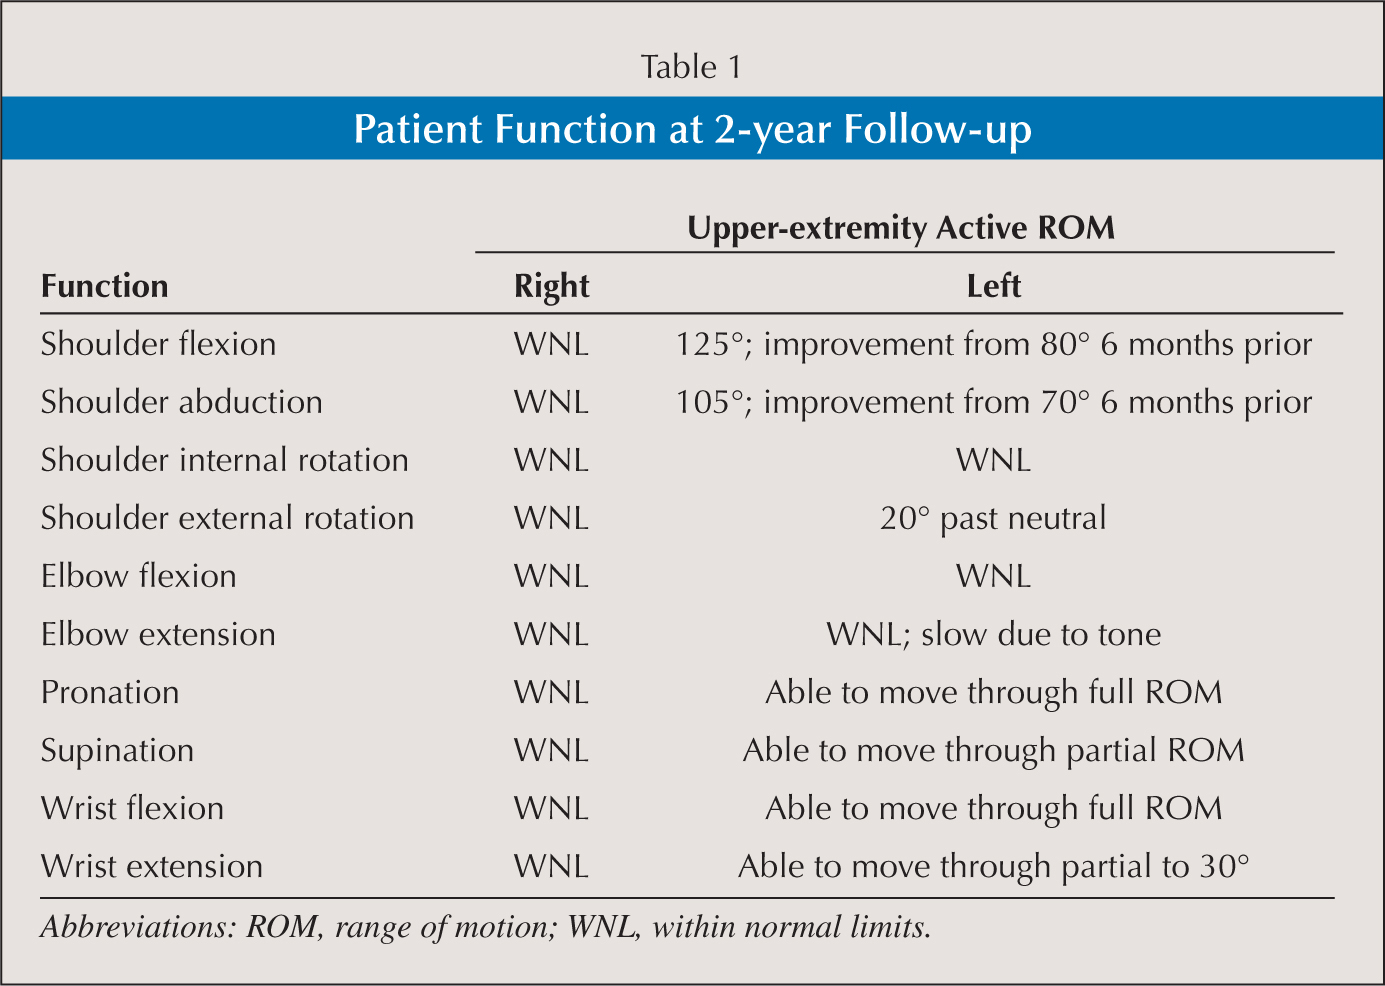 Patient Function at 2-year Follow-up